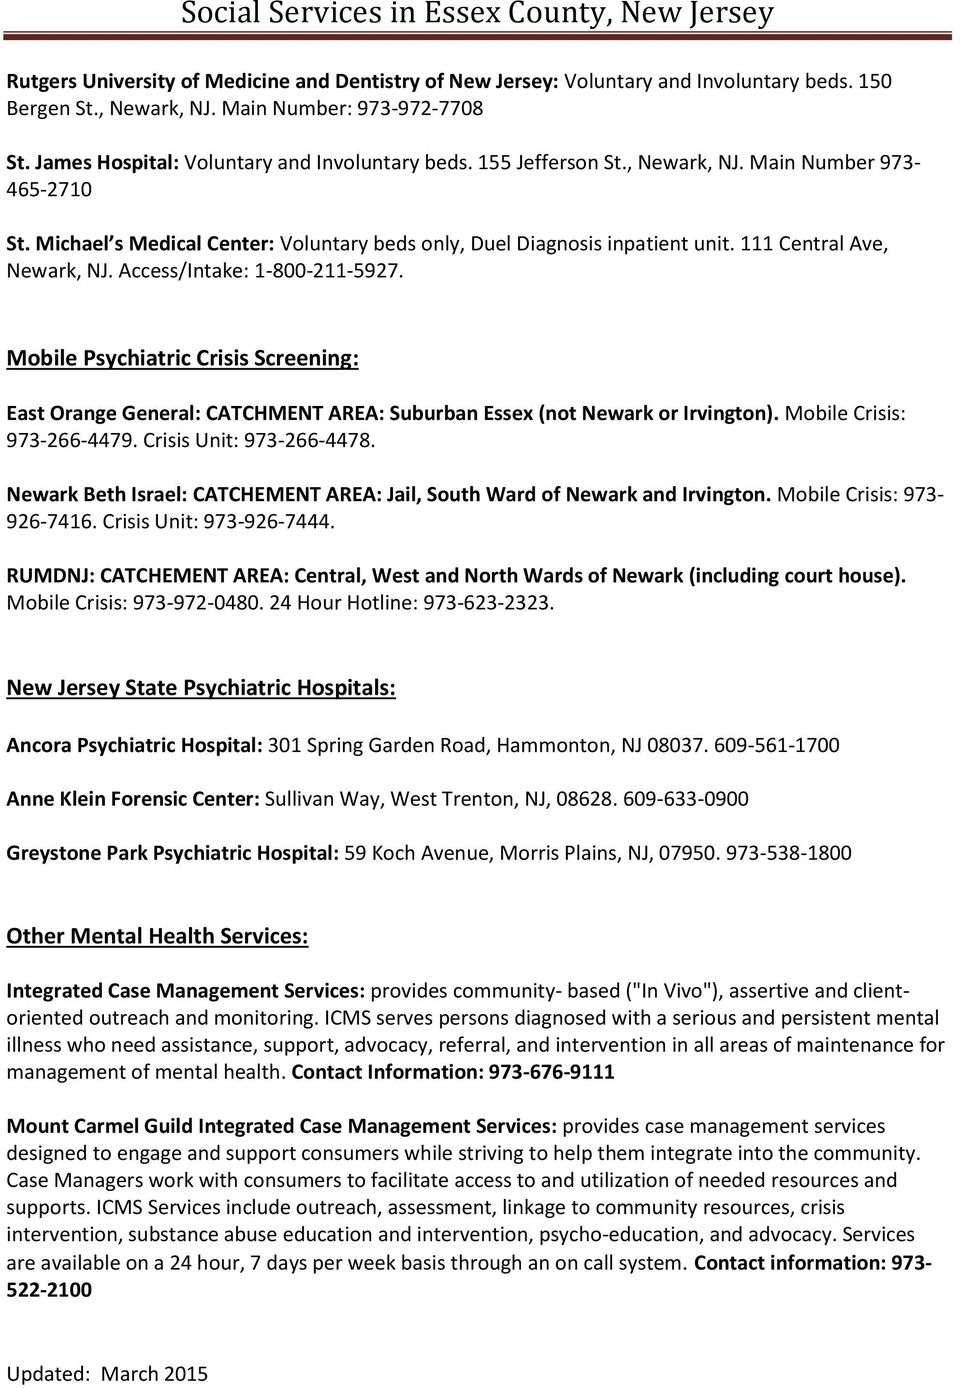 Mobile Psychiatric Crisis Screening: East Orange General: CATCHMENT AREA: Suburban Essex (not Newark or Irvington). Mobile Crisis: 973-266-4479. Crisis Unit: 973-266-4478.